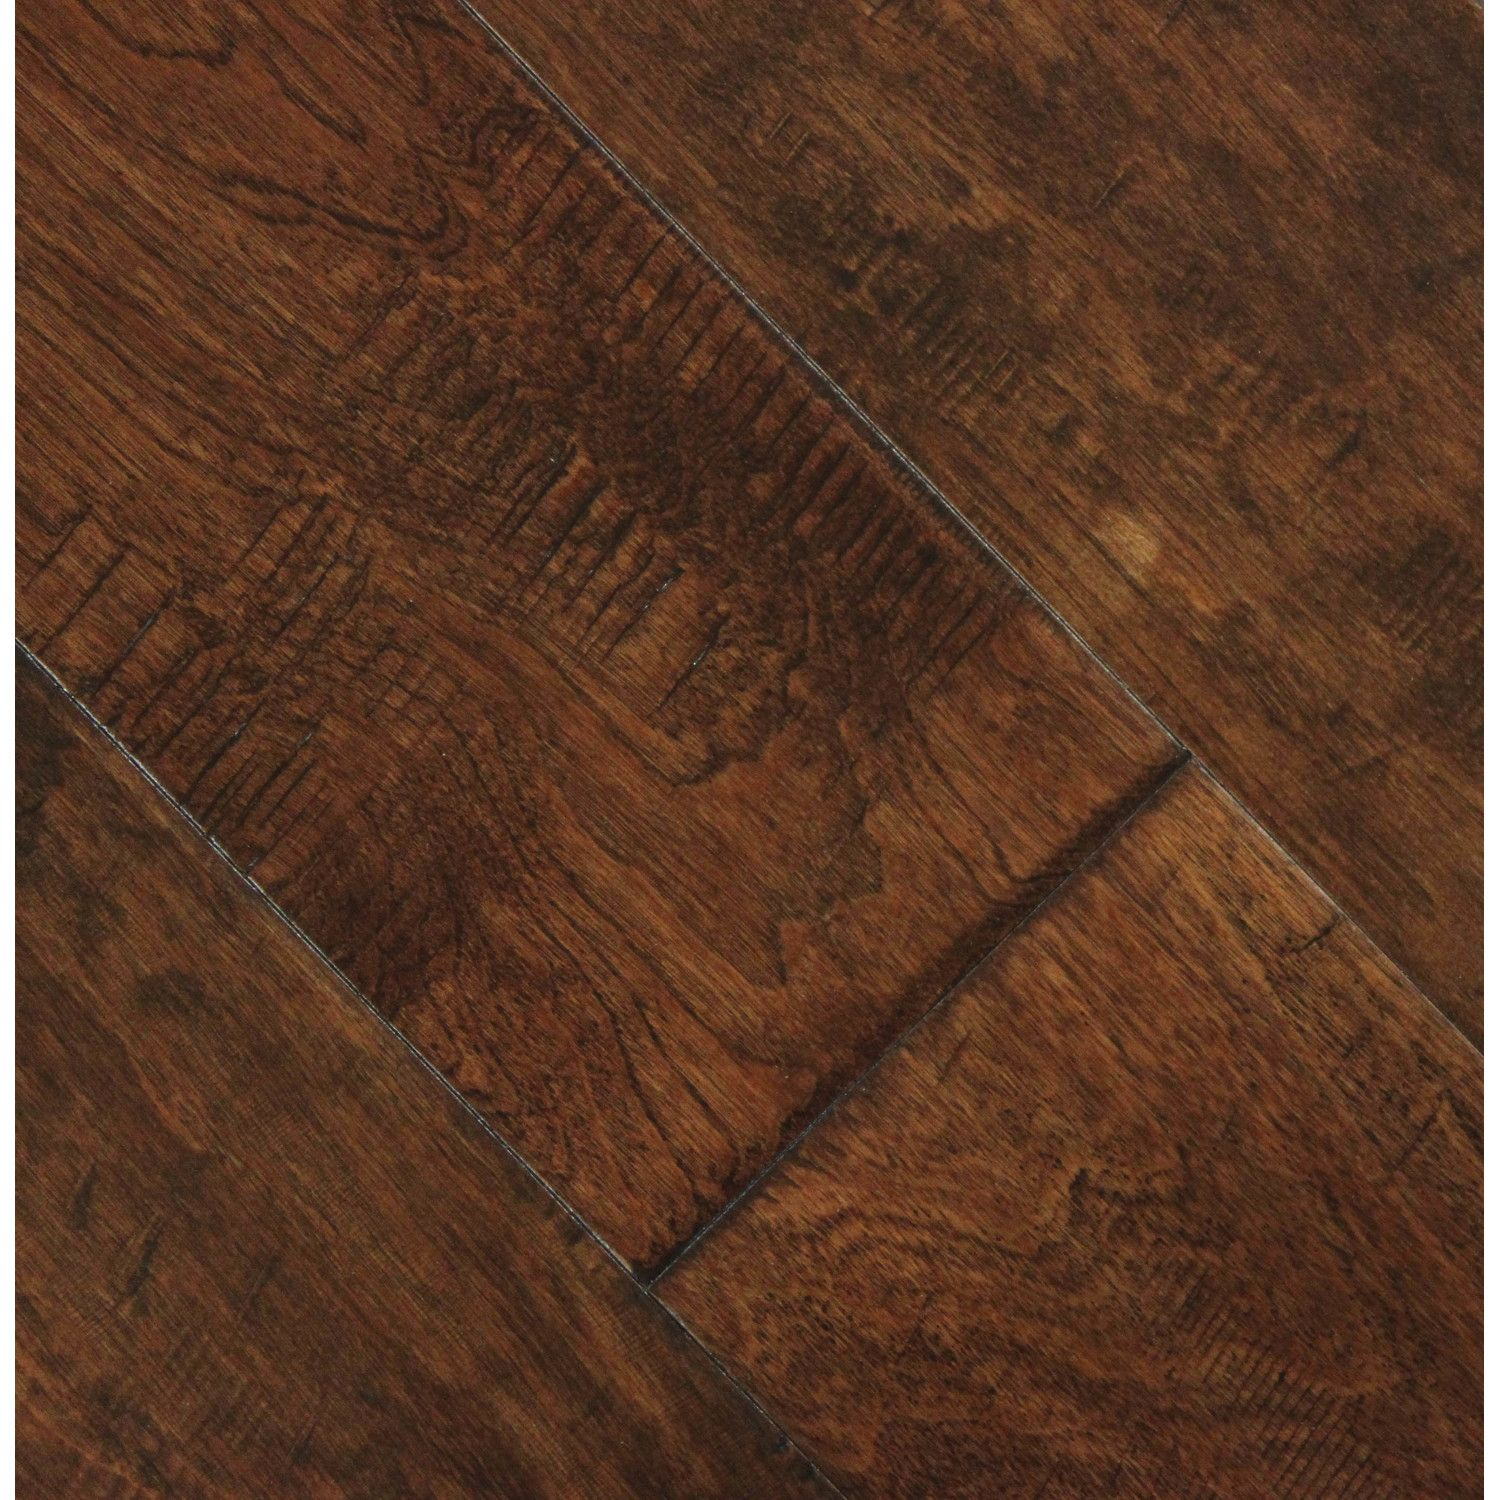 Engineered wood floor reviews - Forest Valley Flooring Frontier 5 Engineered Birch Hardwood Flooring In Tomahawk Reviews Wayfair